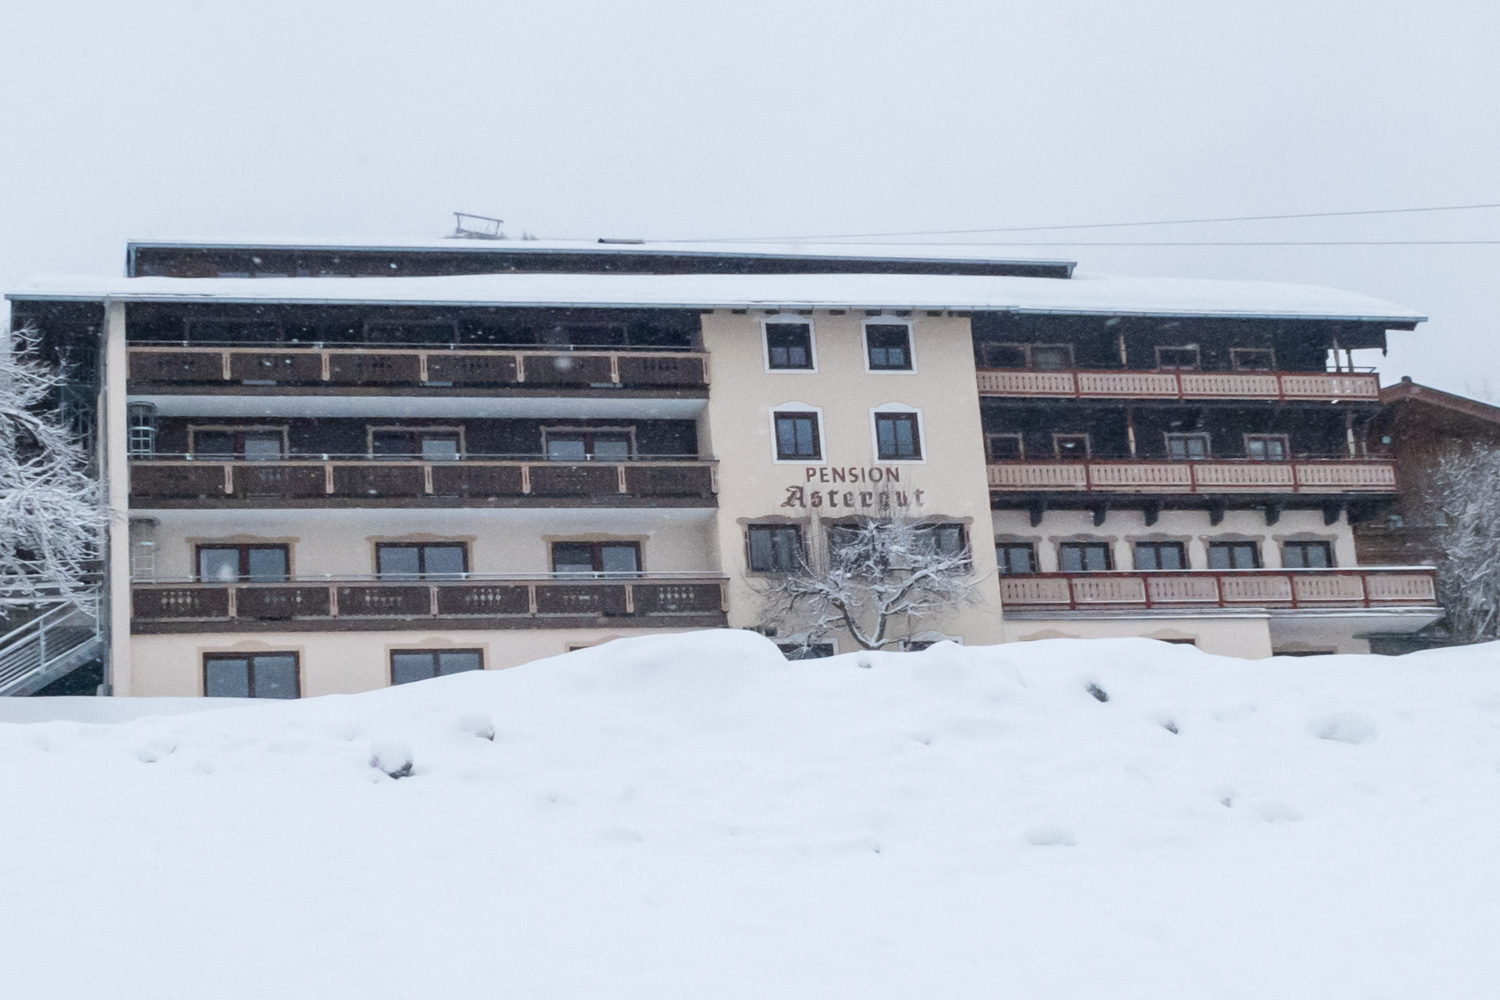 Saalbach-Hinterglemm Hotel Pension Astergut